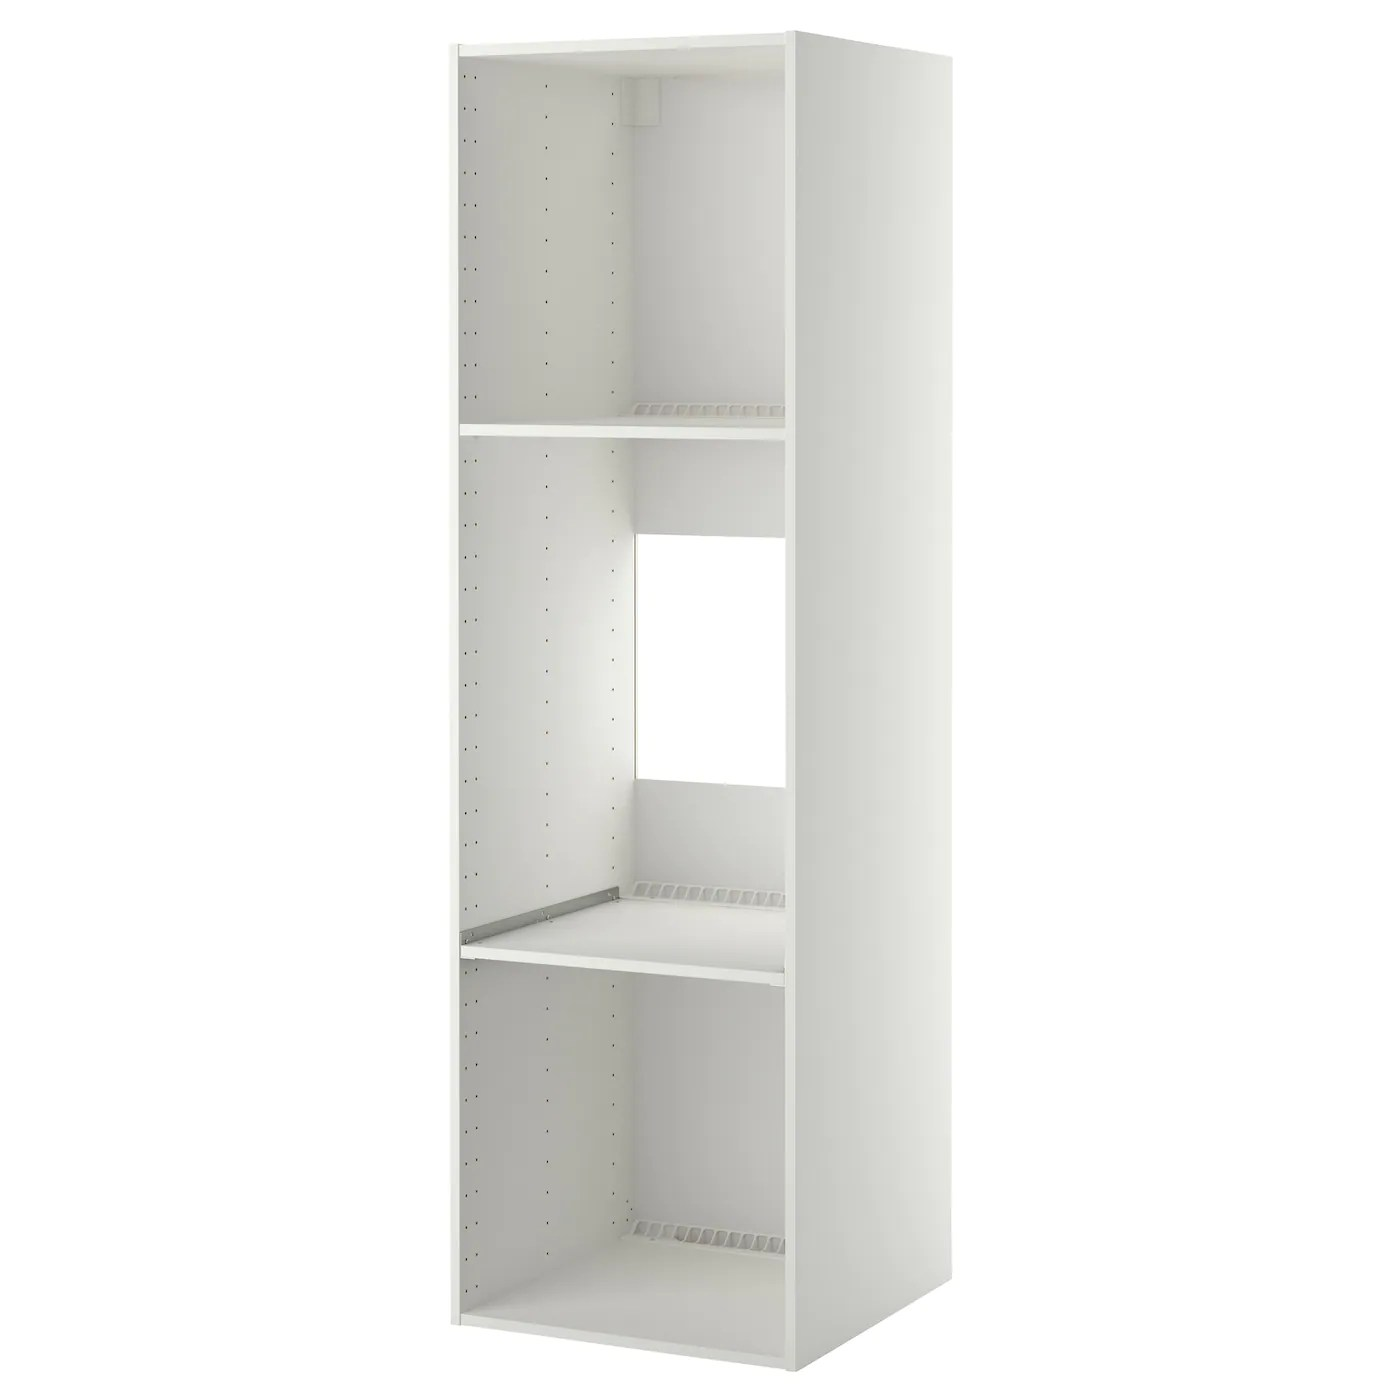 Ikea Küche 2m Metod High Cabinet Frame For Fridge Oven White 60 X 60 X